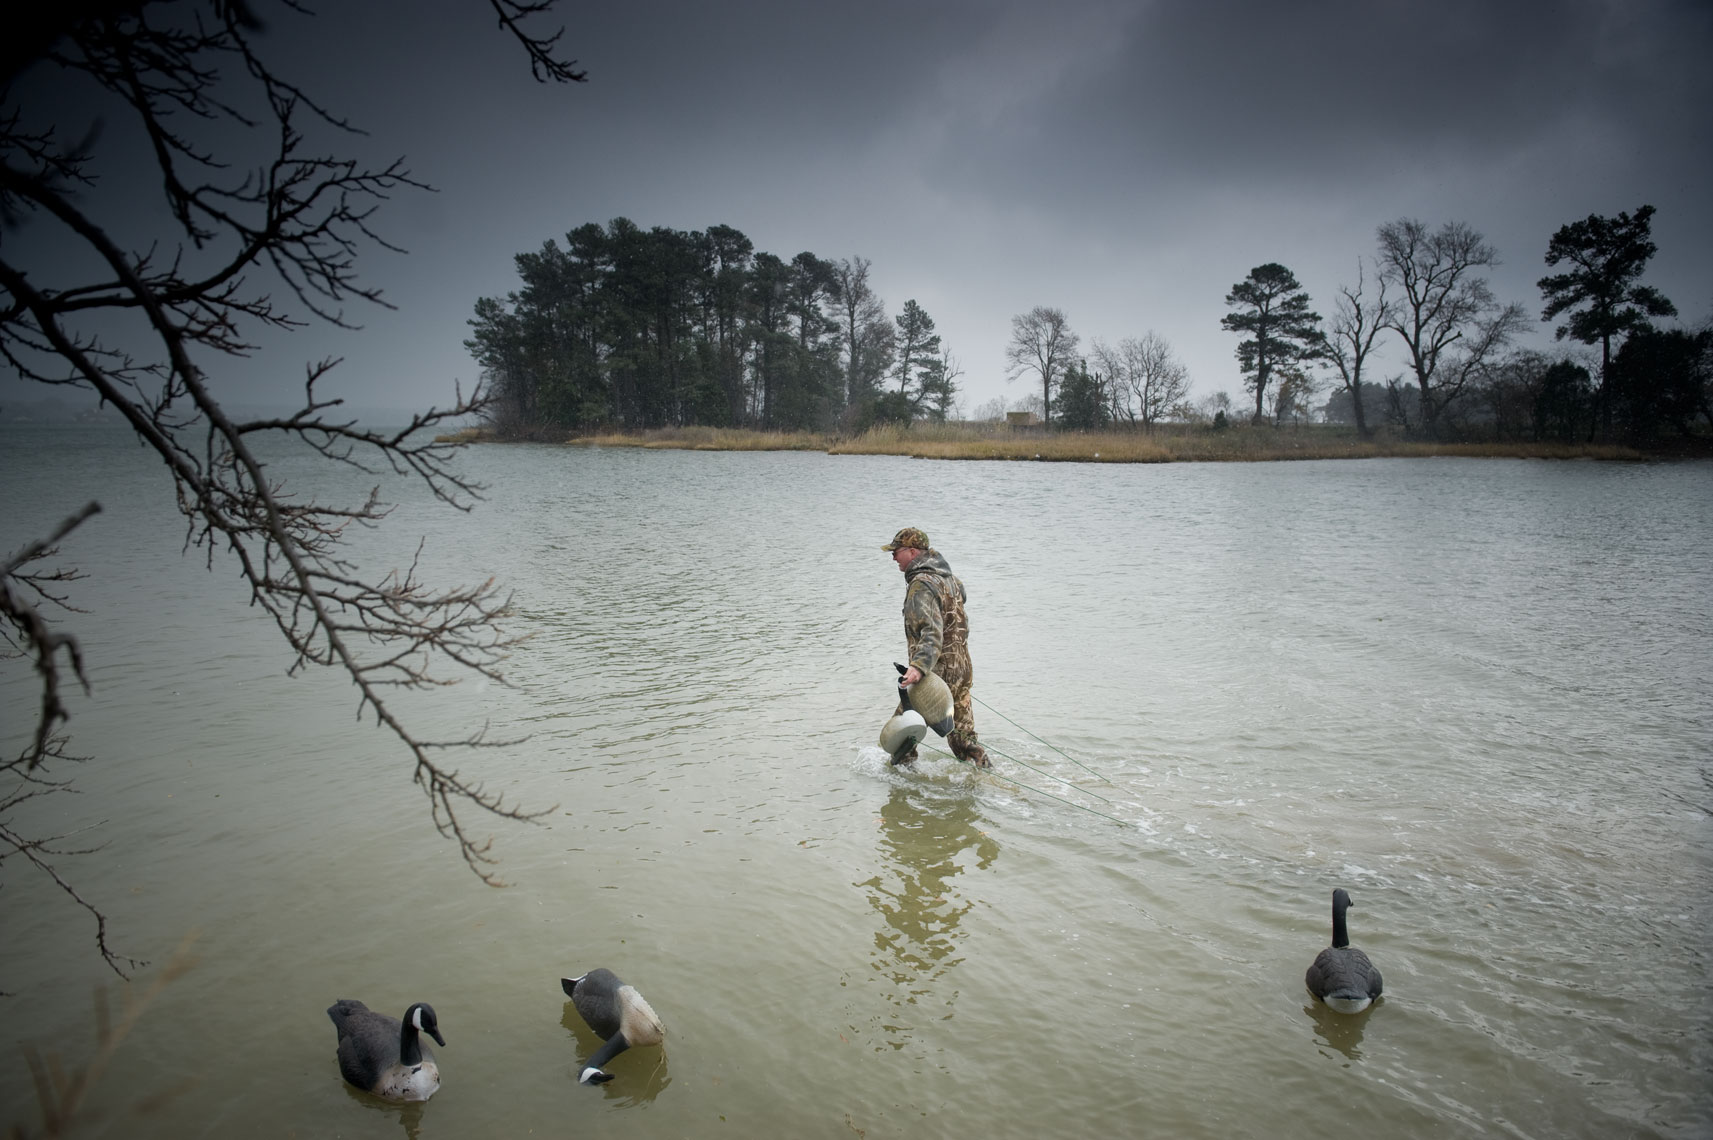 Hunting for waterfowl on the Eastern Shore of Maryland: decoys are placed out in the water